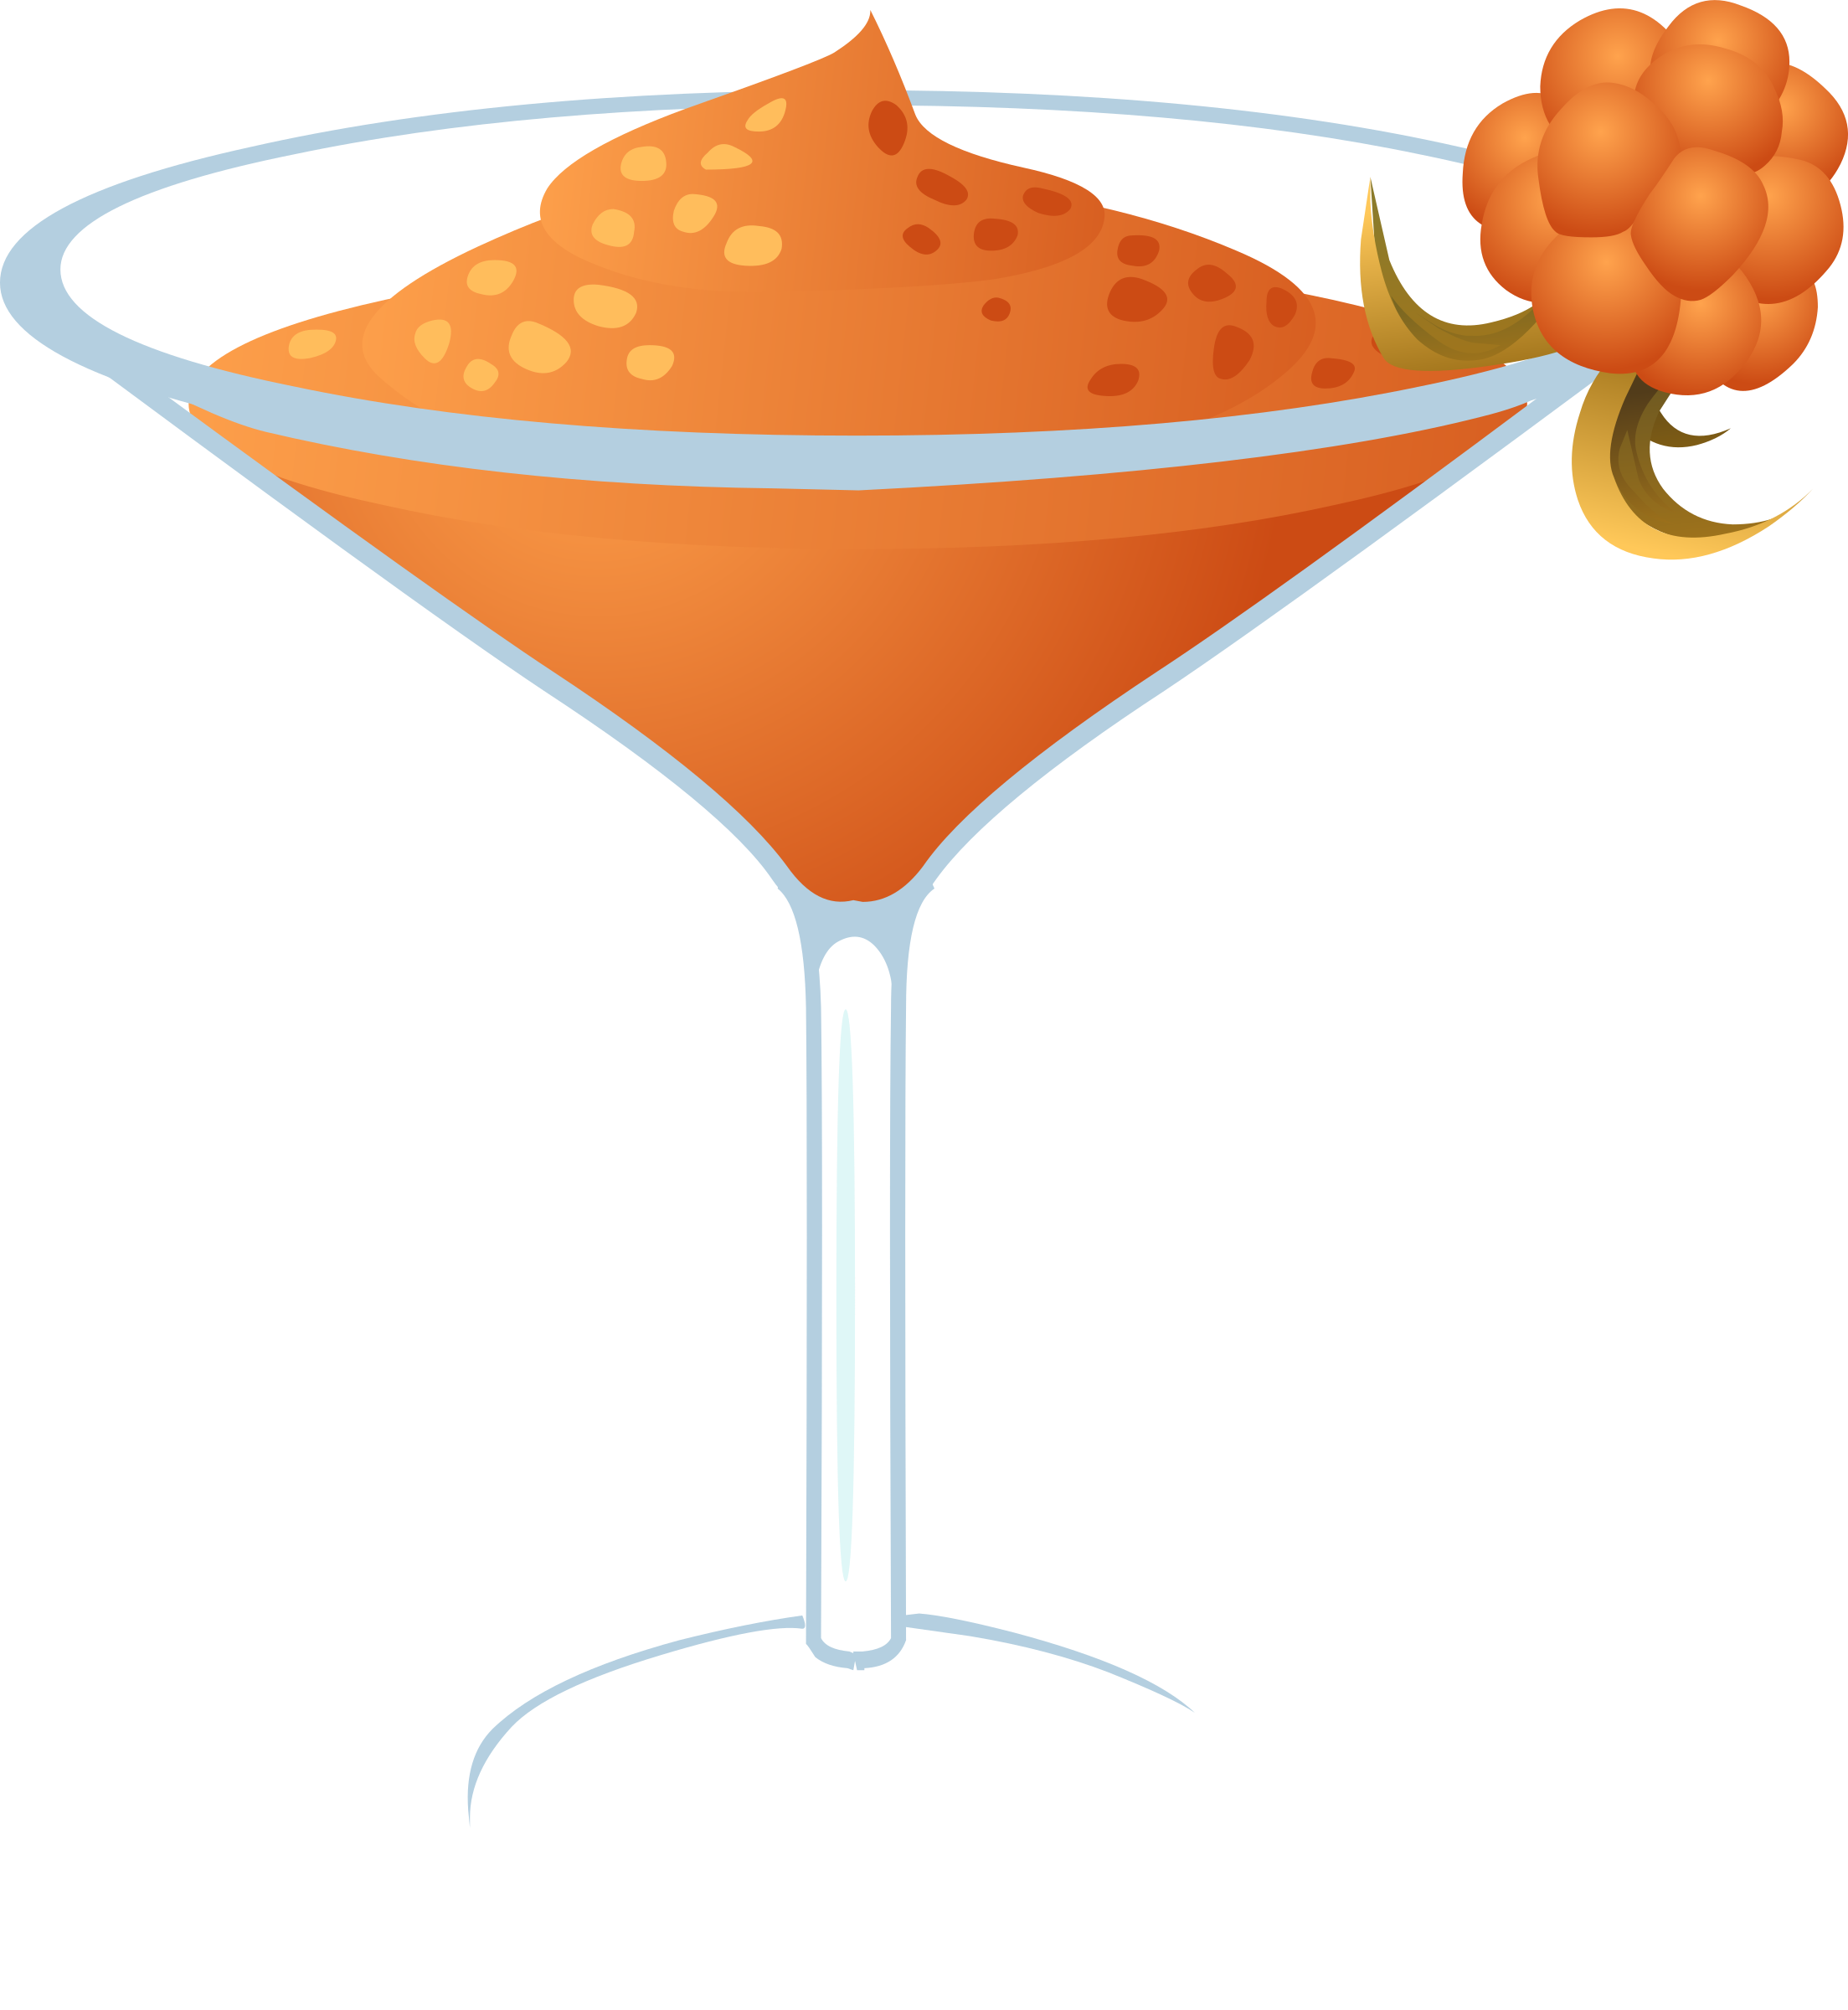 Drinks clipart vector. Drink cloudberry daiquiri icons